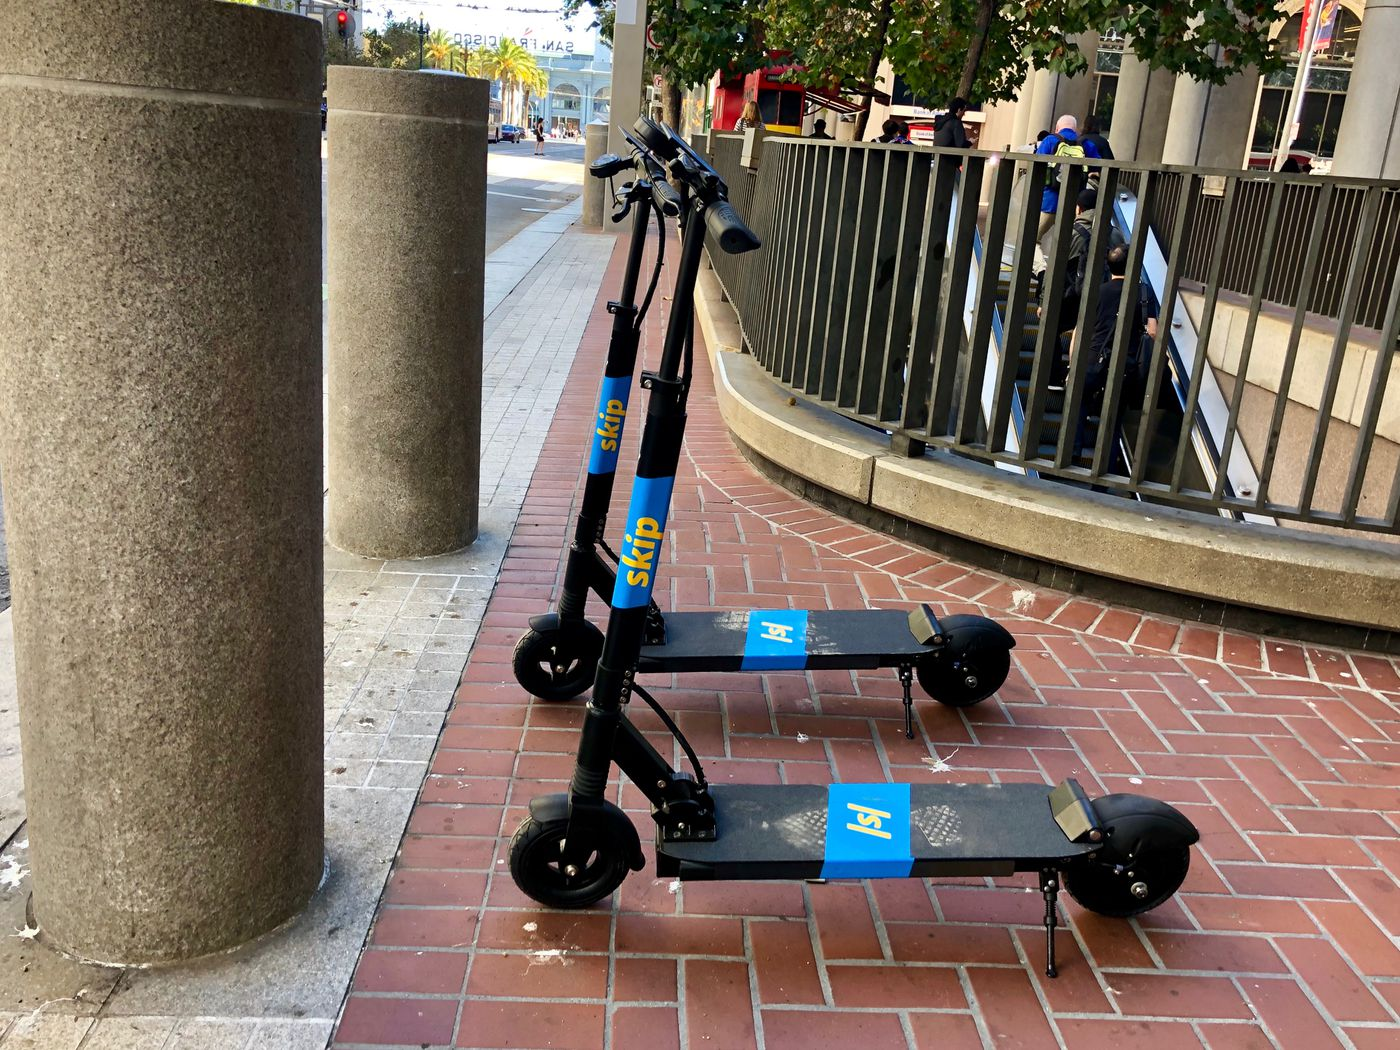 After electric scooter fire, Skip takes fleet off streets - Curbed SF